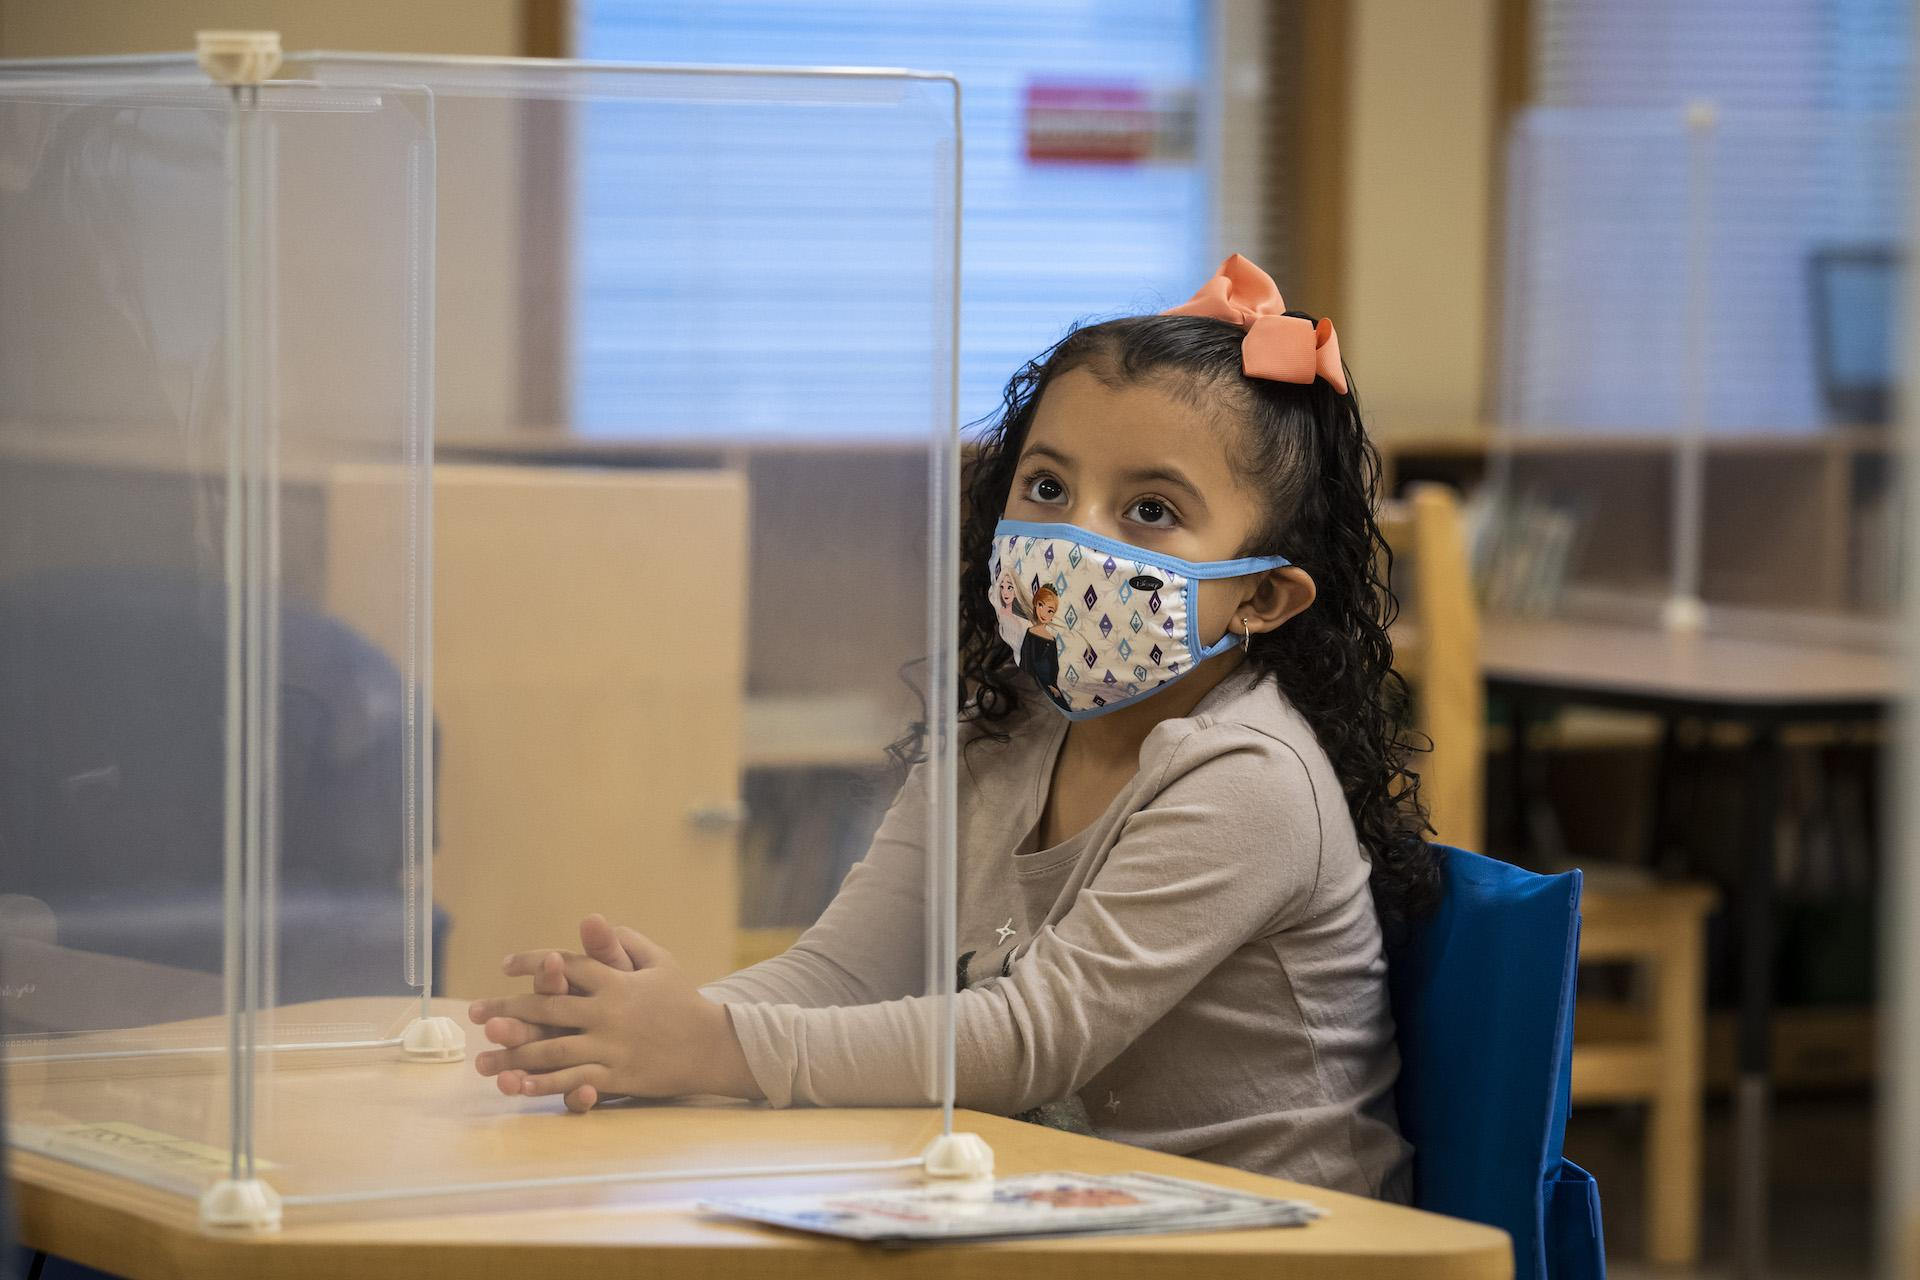 A preschool student listens as her teacher talks during class at Dawes Elementary School at 3810 W. 81st Place on the Southwest Side, Monday morning, Jan. 11, 2021. (Ashlee Rezin Garcia / Chicago Sun-Times / Pool)